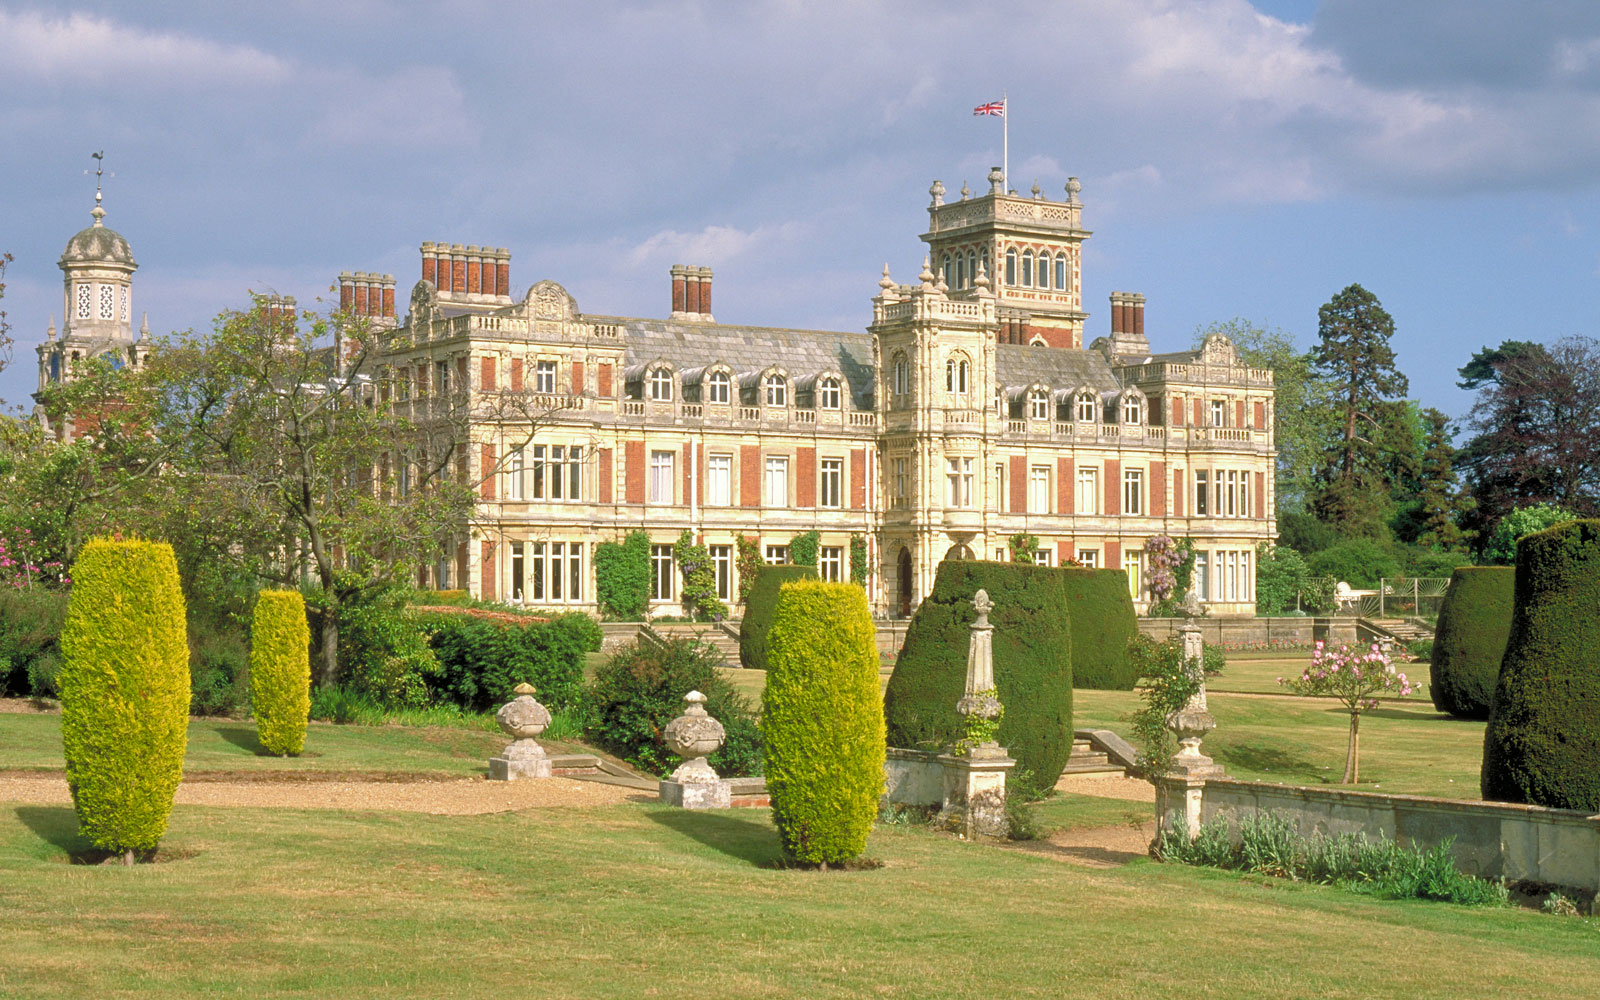 Somerleyton Estate in Suffolk, England